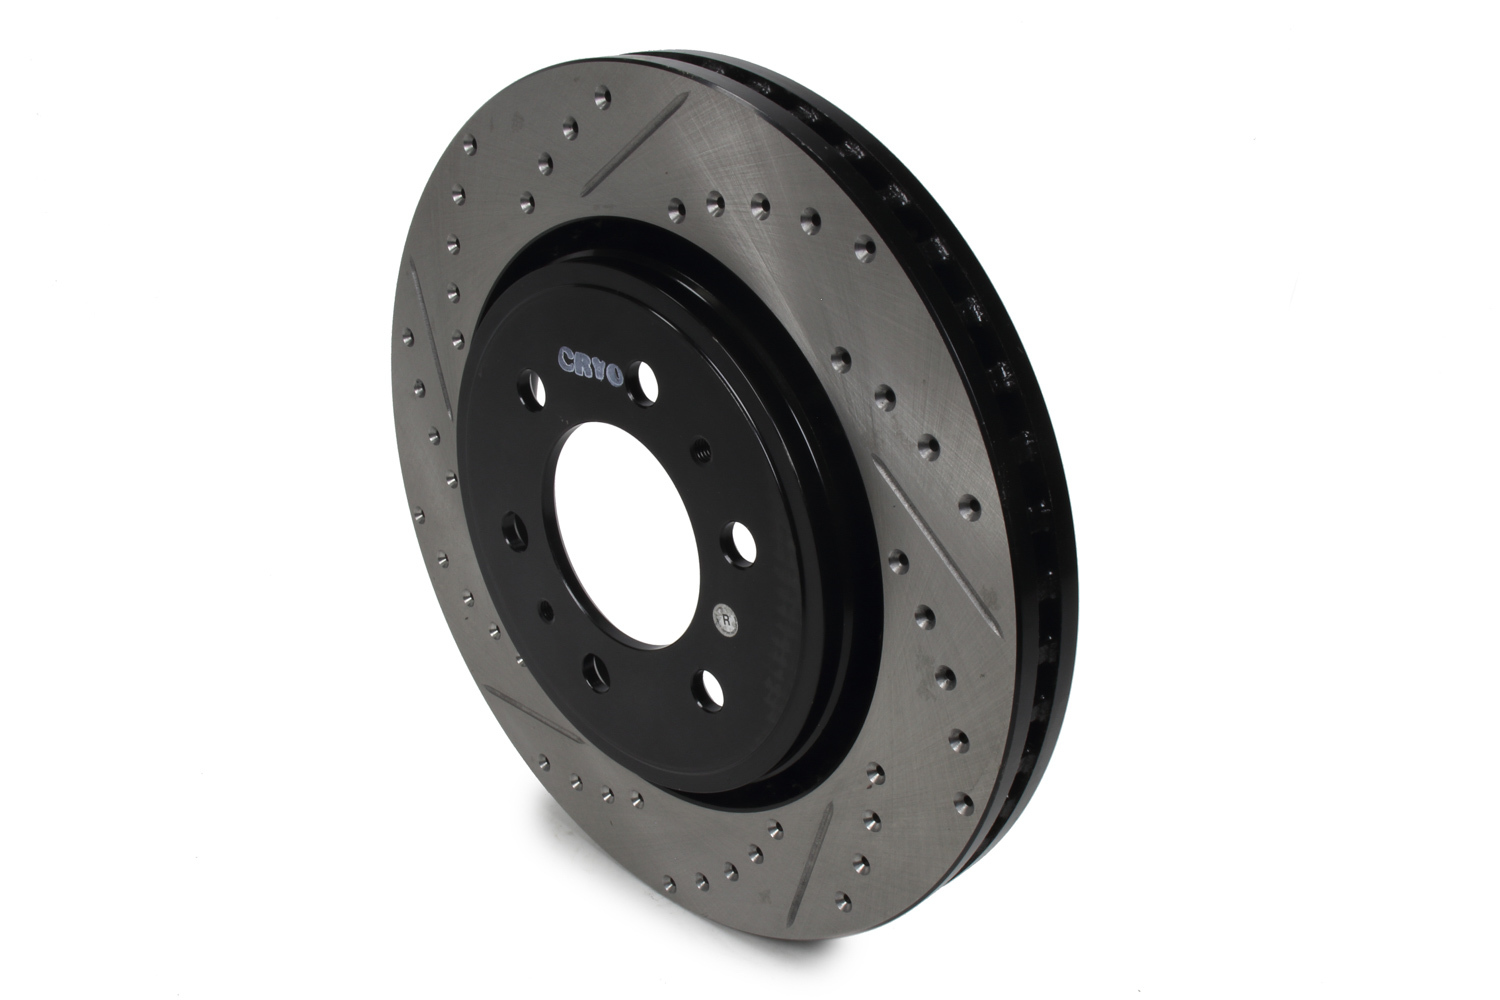 Stoptech 127.65119CR Brake Rotor, Sport Cryo, Front, Passenger Side, Drilled / Slotted, 350 mm OD, 34 mm Thick, 6 x 135 mm Bolt Pattern, Iron, Black Paint, Each